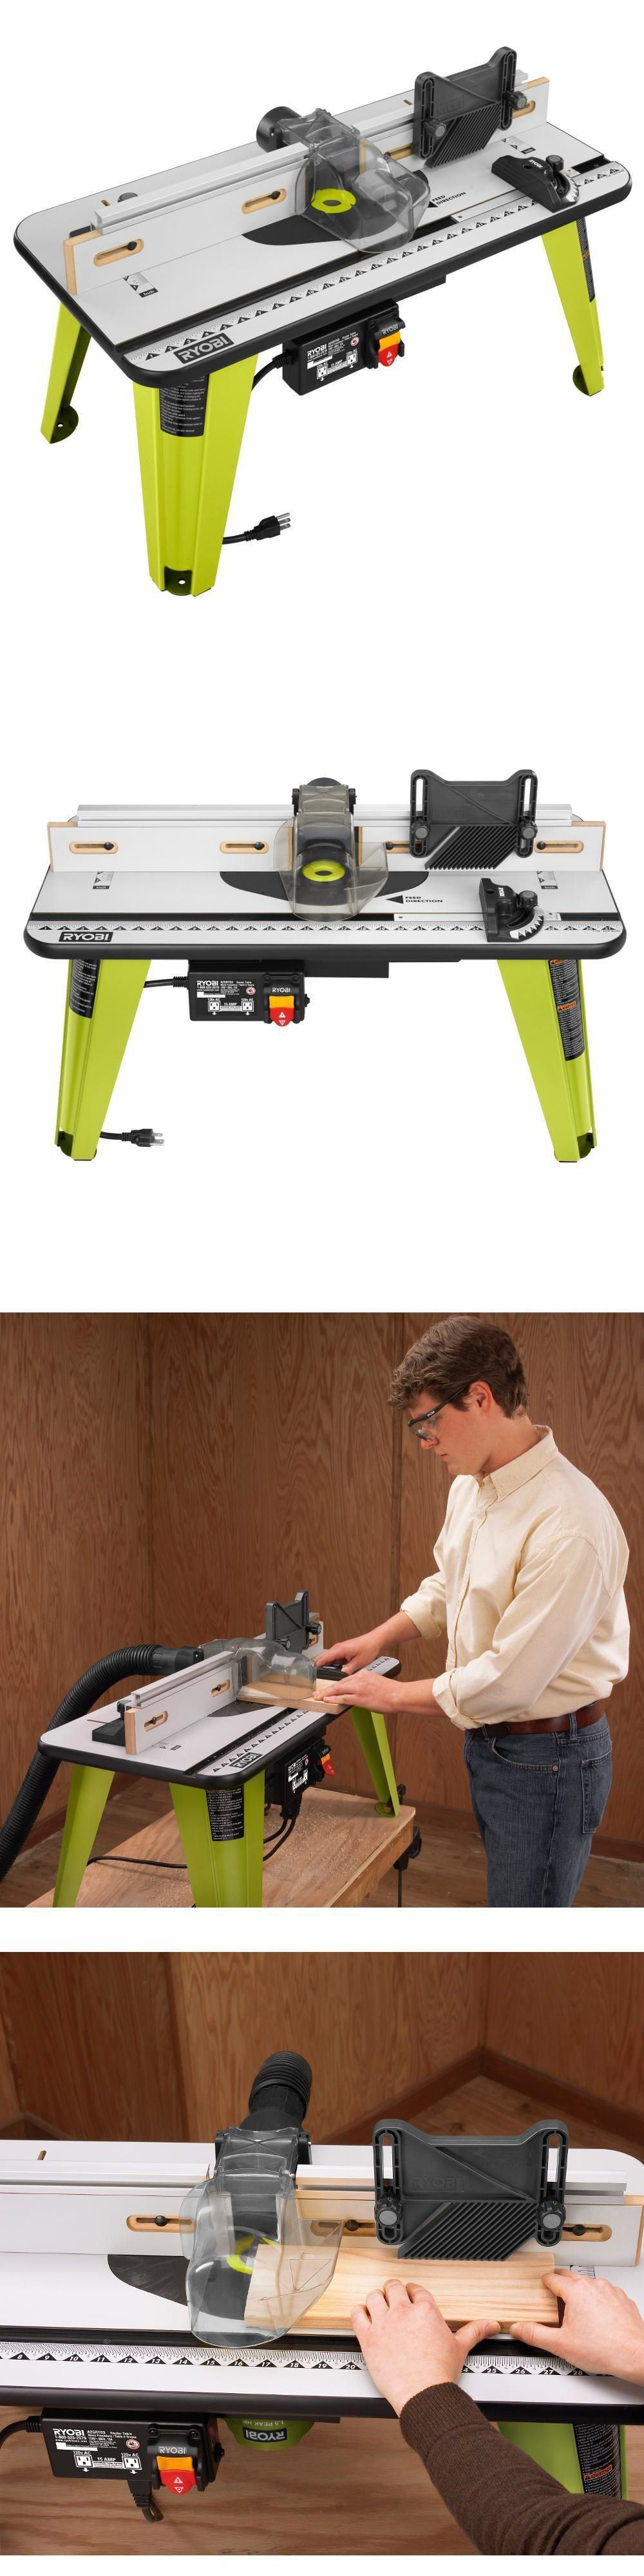 Router Tables 75680 Ryobi Universal Router Table Buy It Now